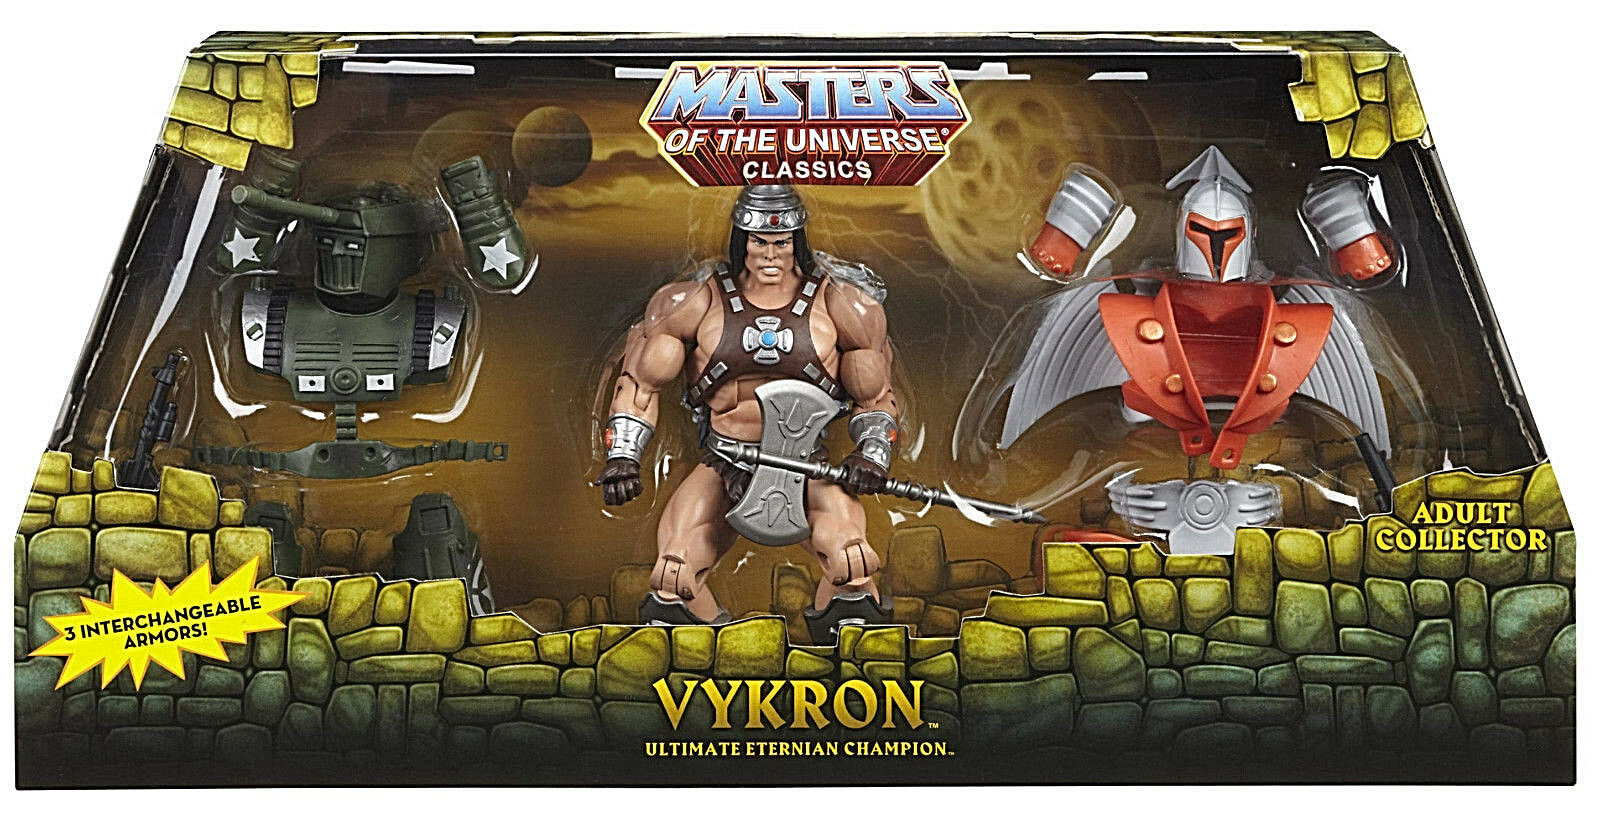 MASTERS OF THE UNIVERSE Classics_VYKRON 6   figure_San Diego Comic Con Exclusive